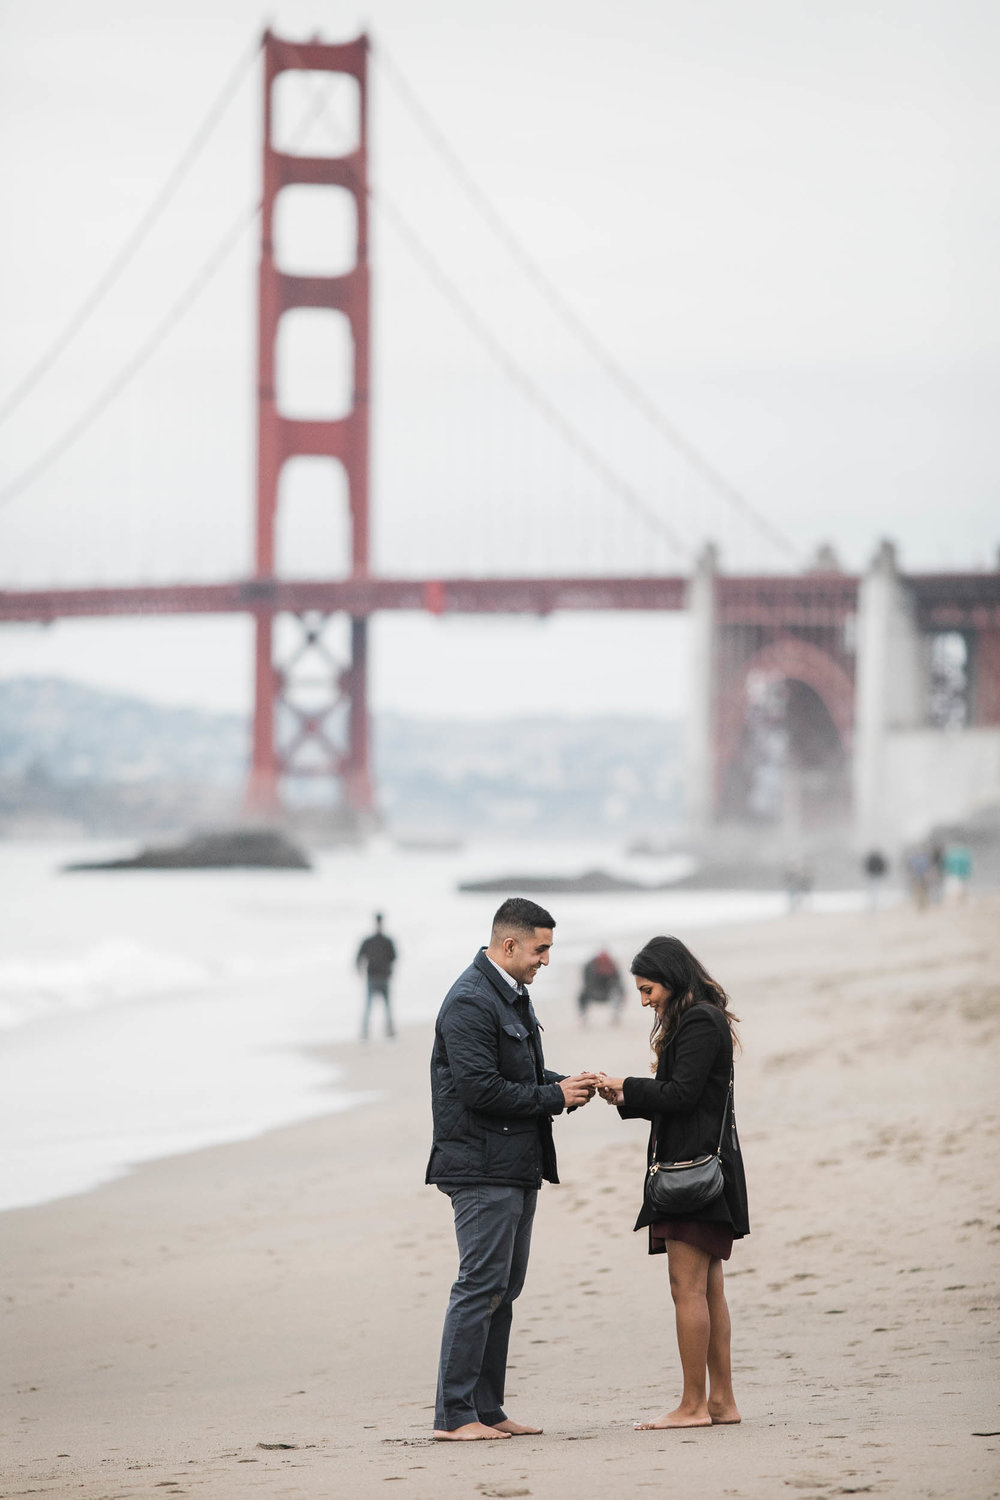 112017_D+S Proposal_Baker Beach_Buena Lane Photography_061.jpg